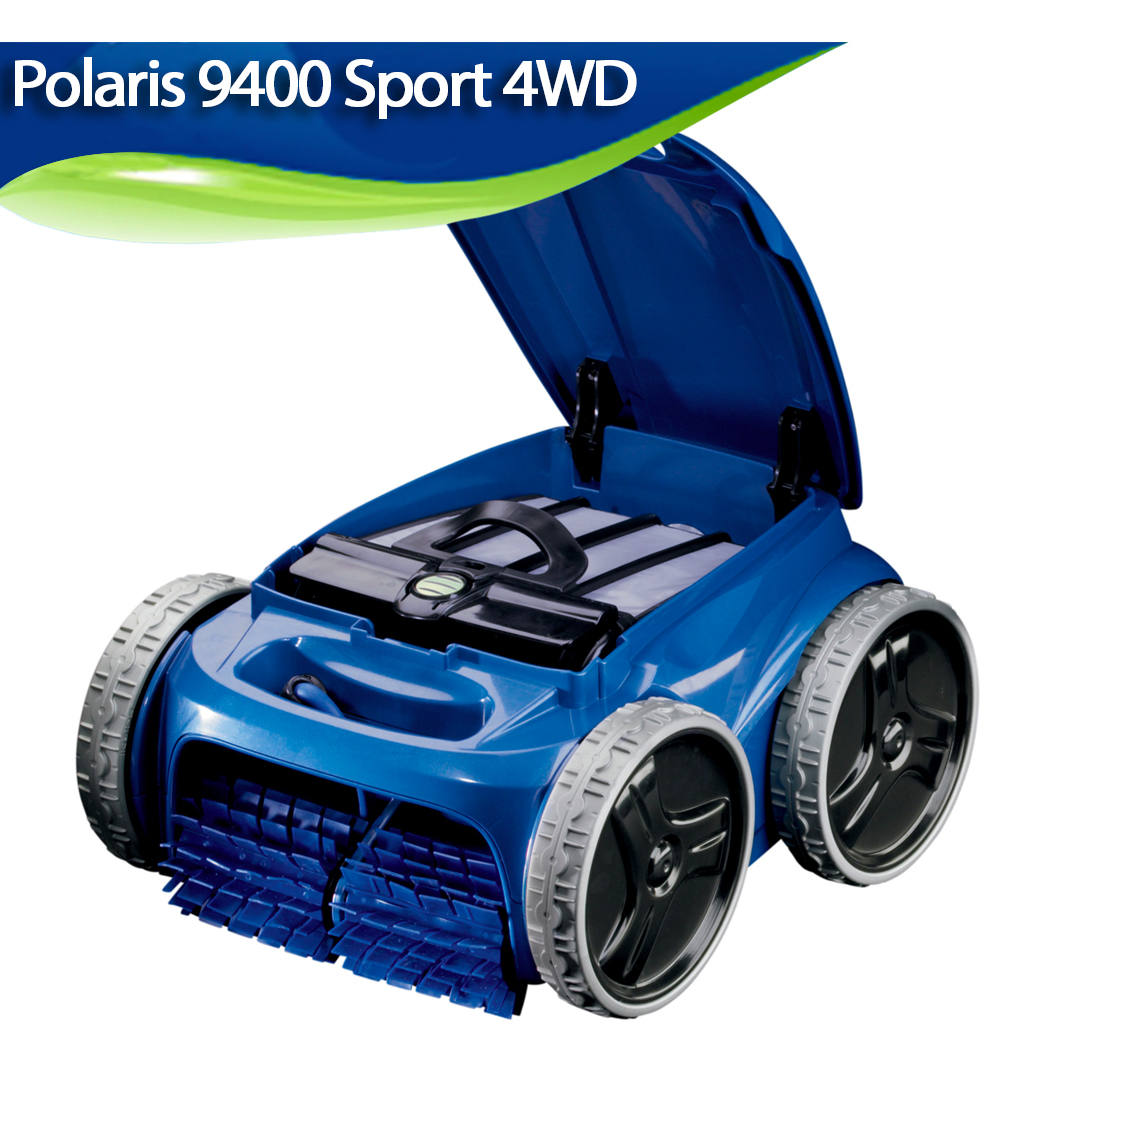 Polaris 9400 Sport 4wd Review Best Robotic Pool Cleaners